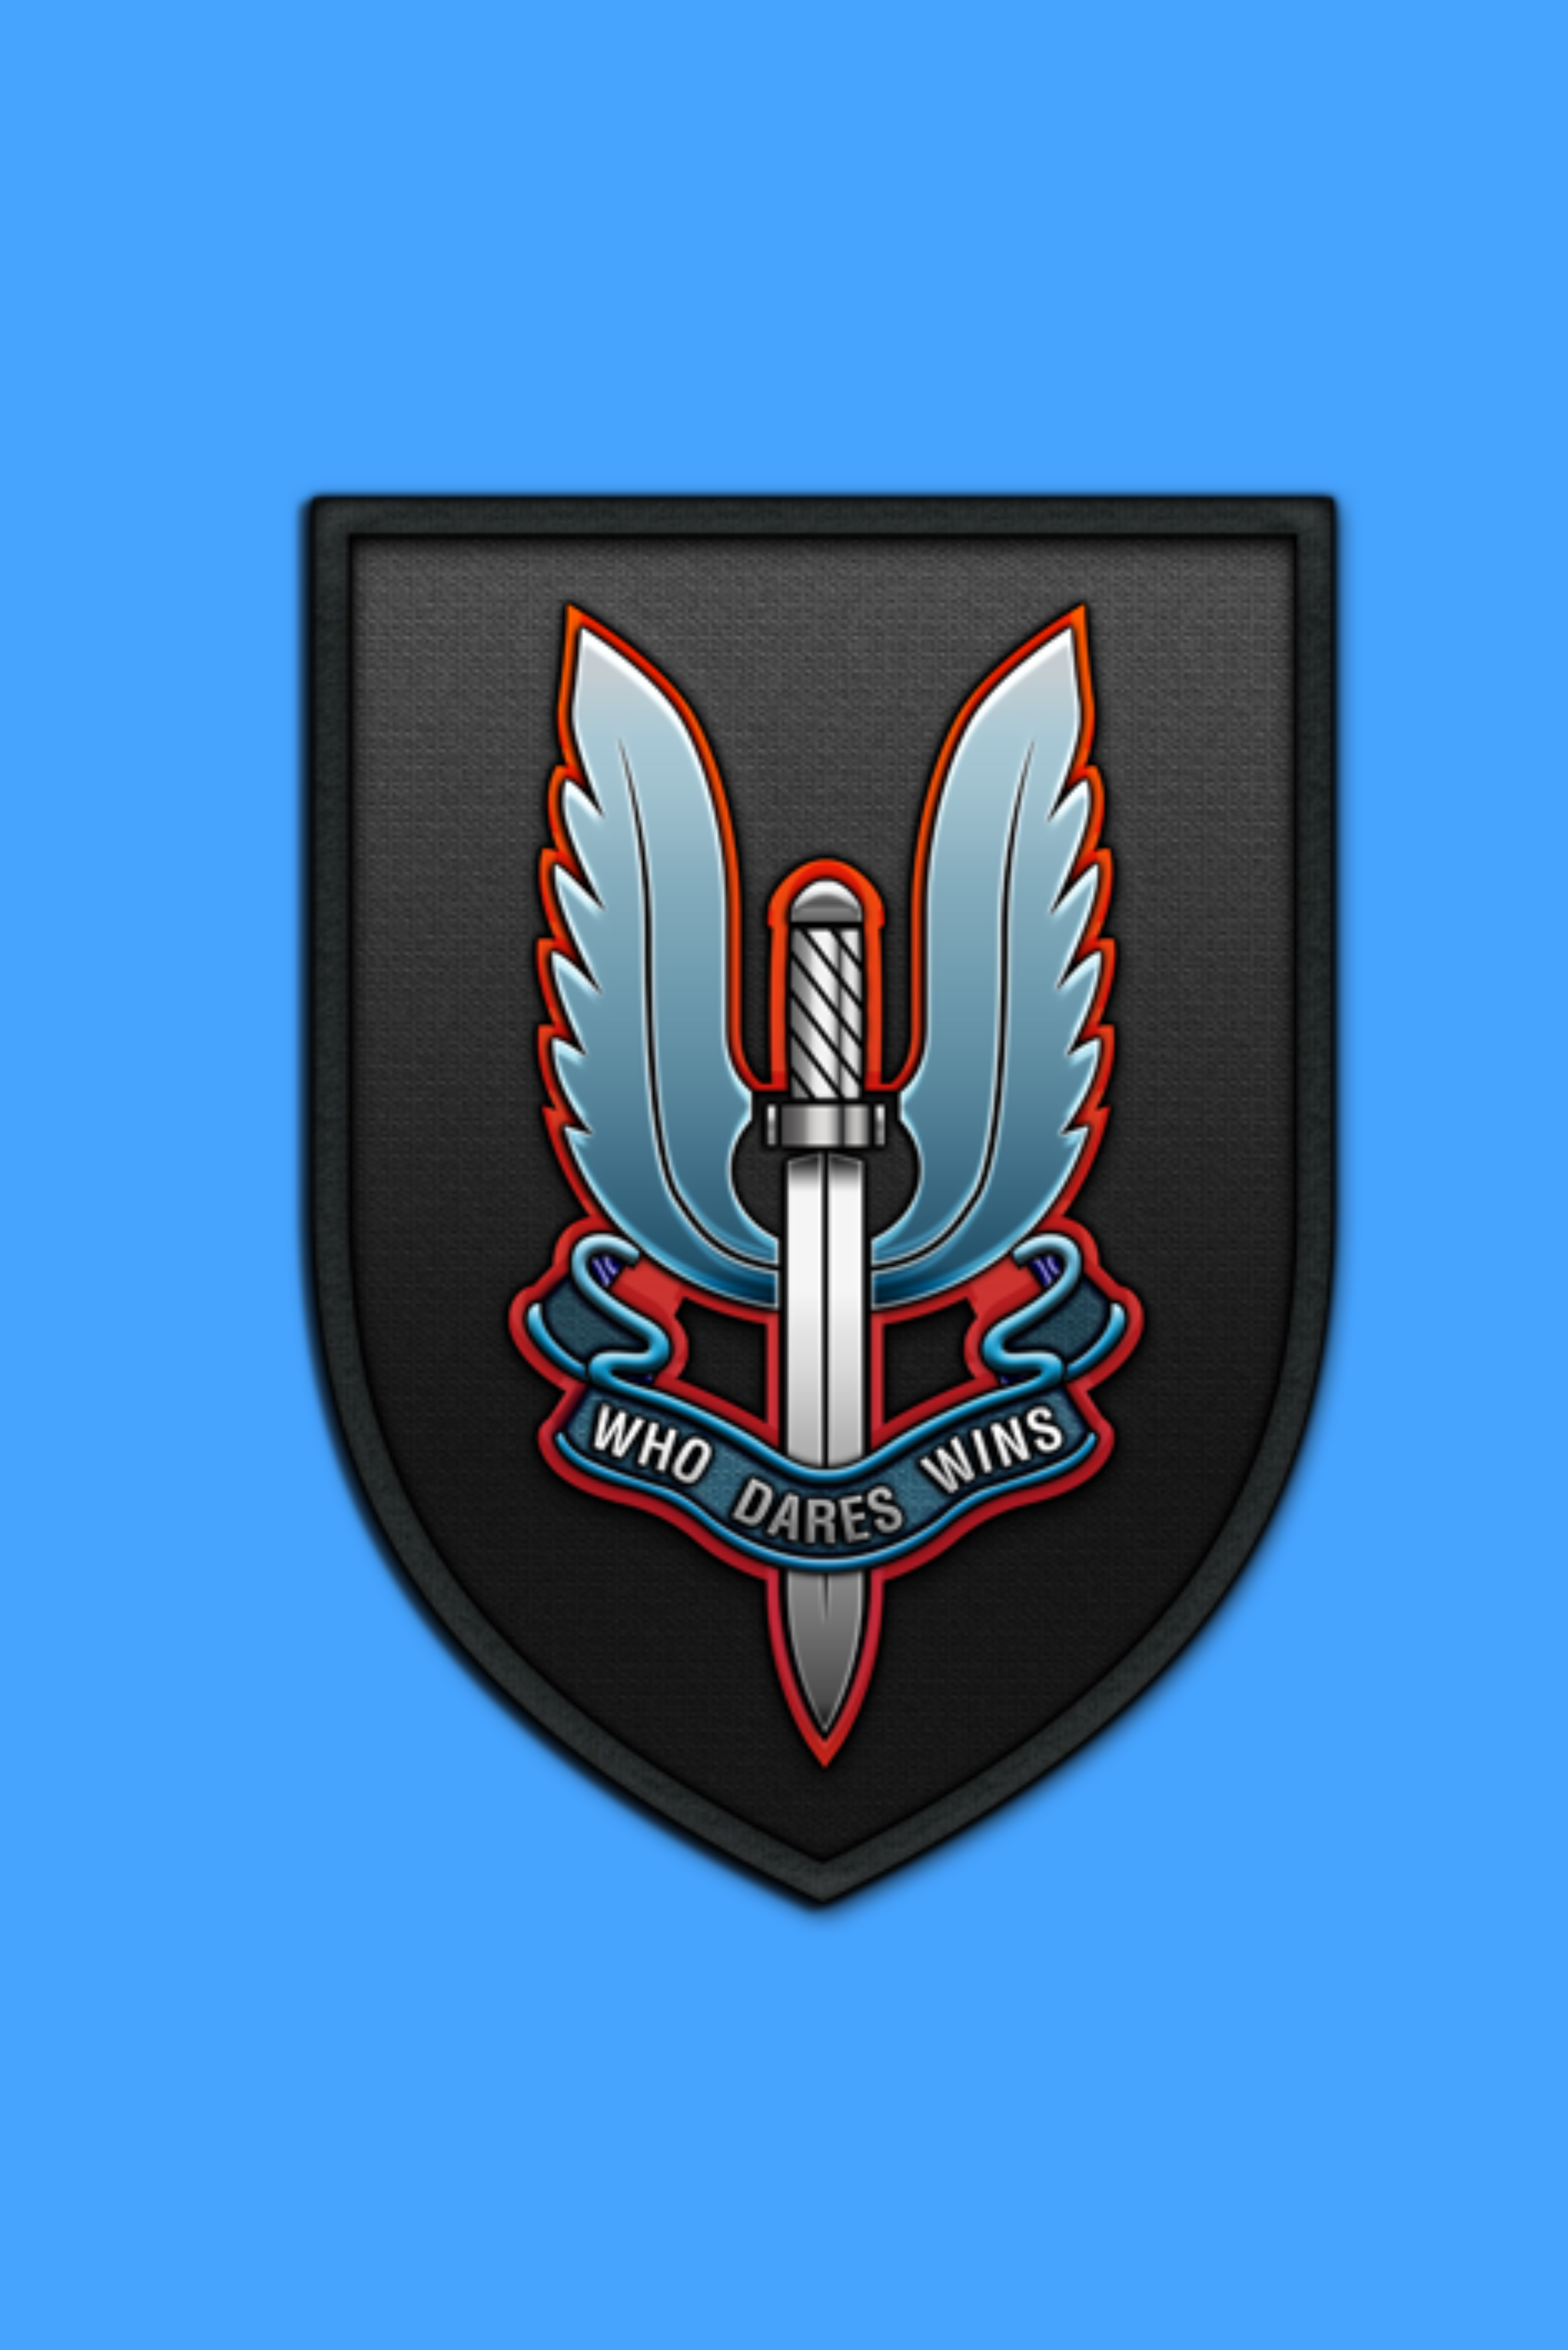 Special Air Service British army regiments, Army badge